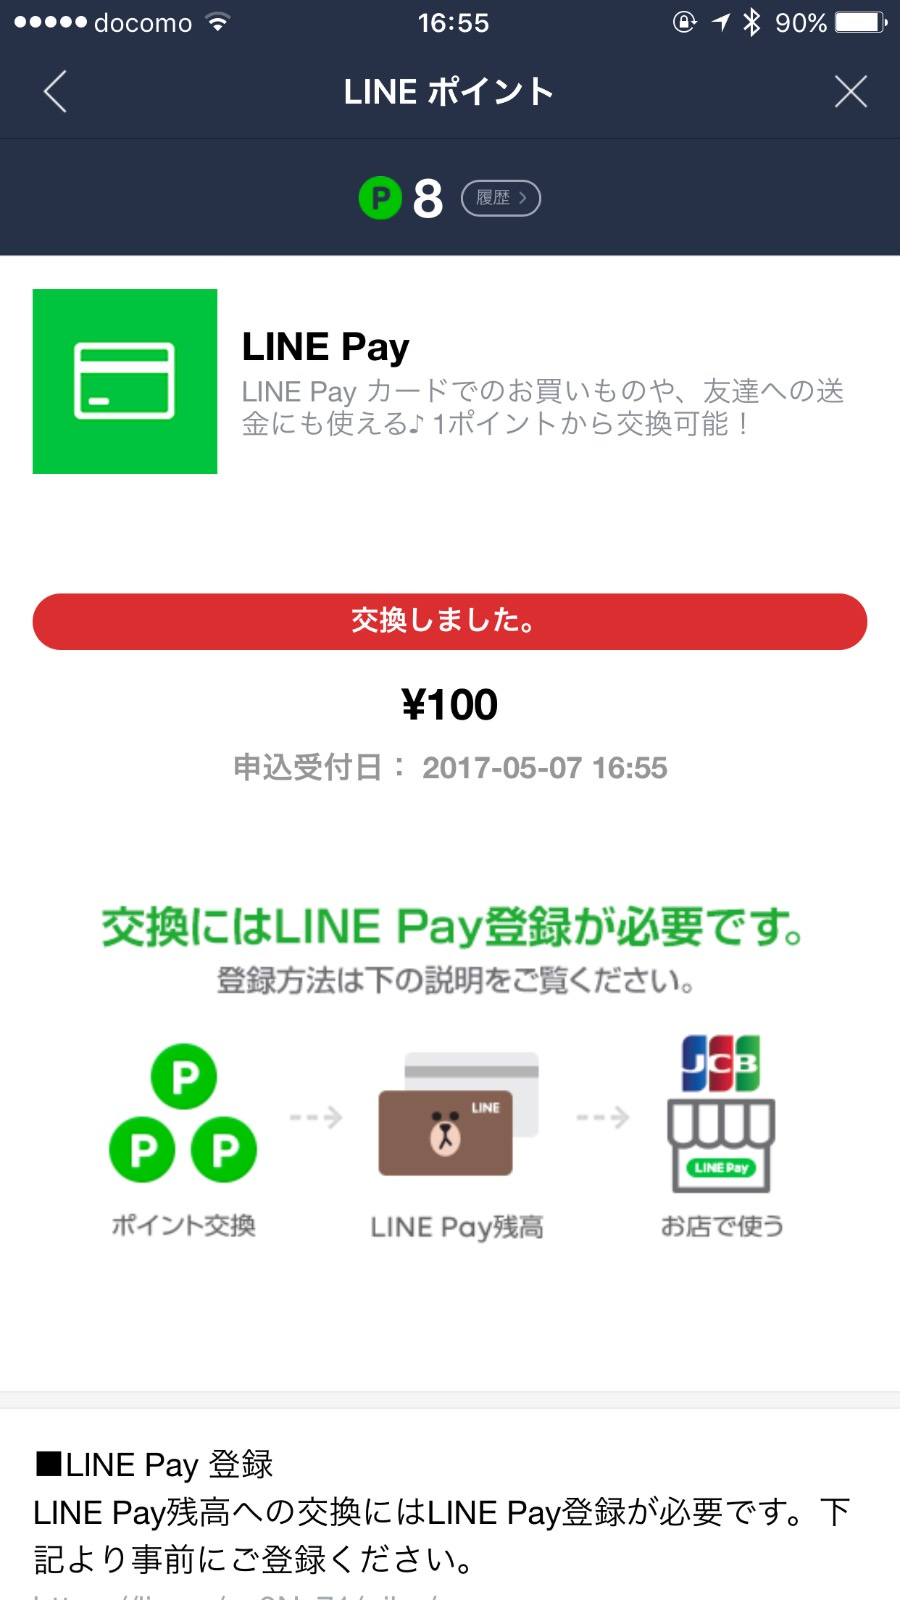 Line pay card point 0671